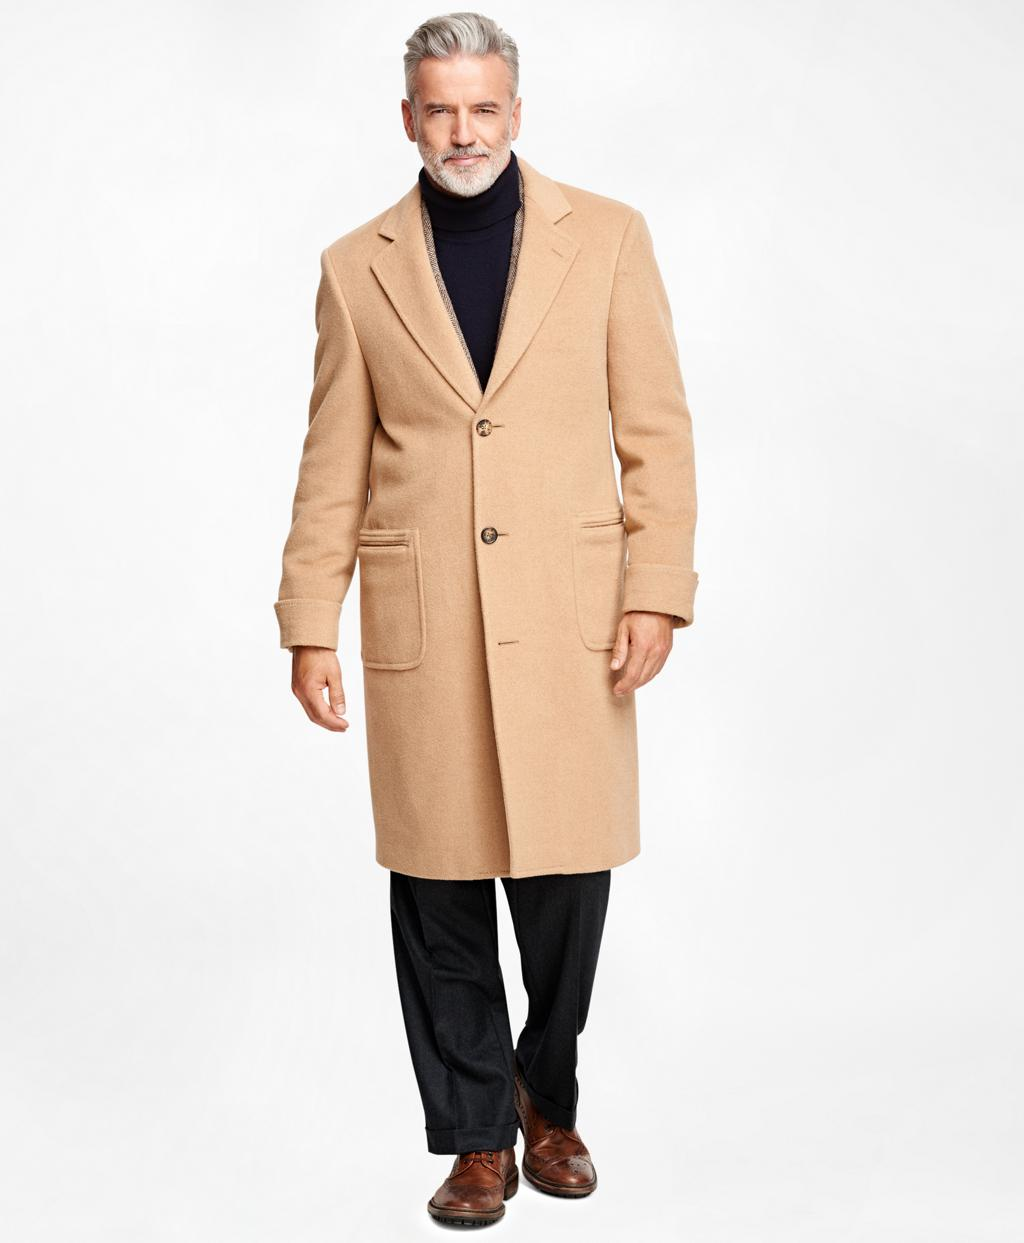 670b2aded168c Lyst - Brooks Brothers Golden Fleece Single-breasted Polo Coat in Natural  for Men